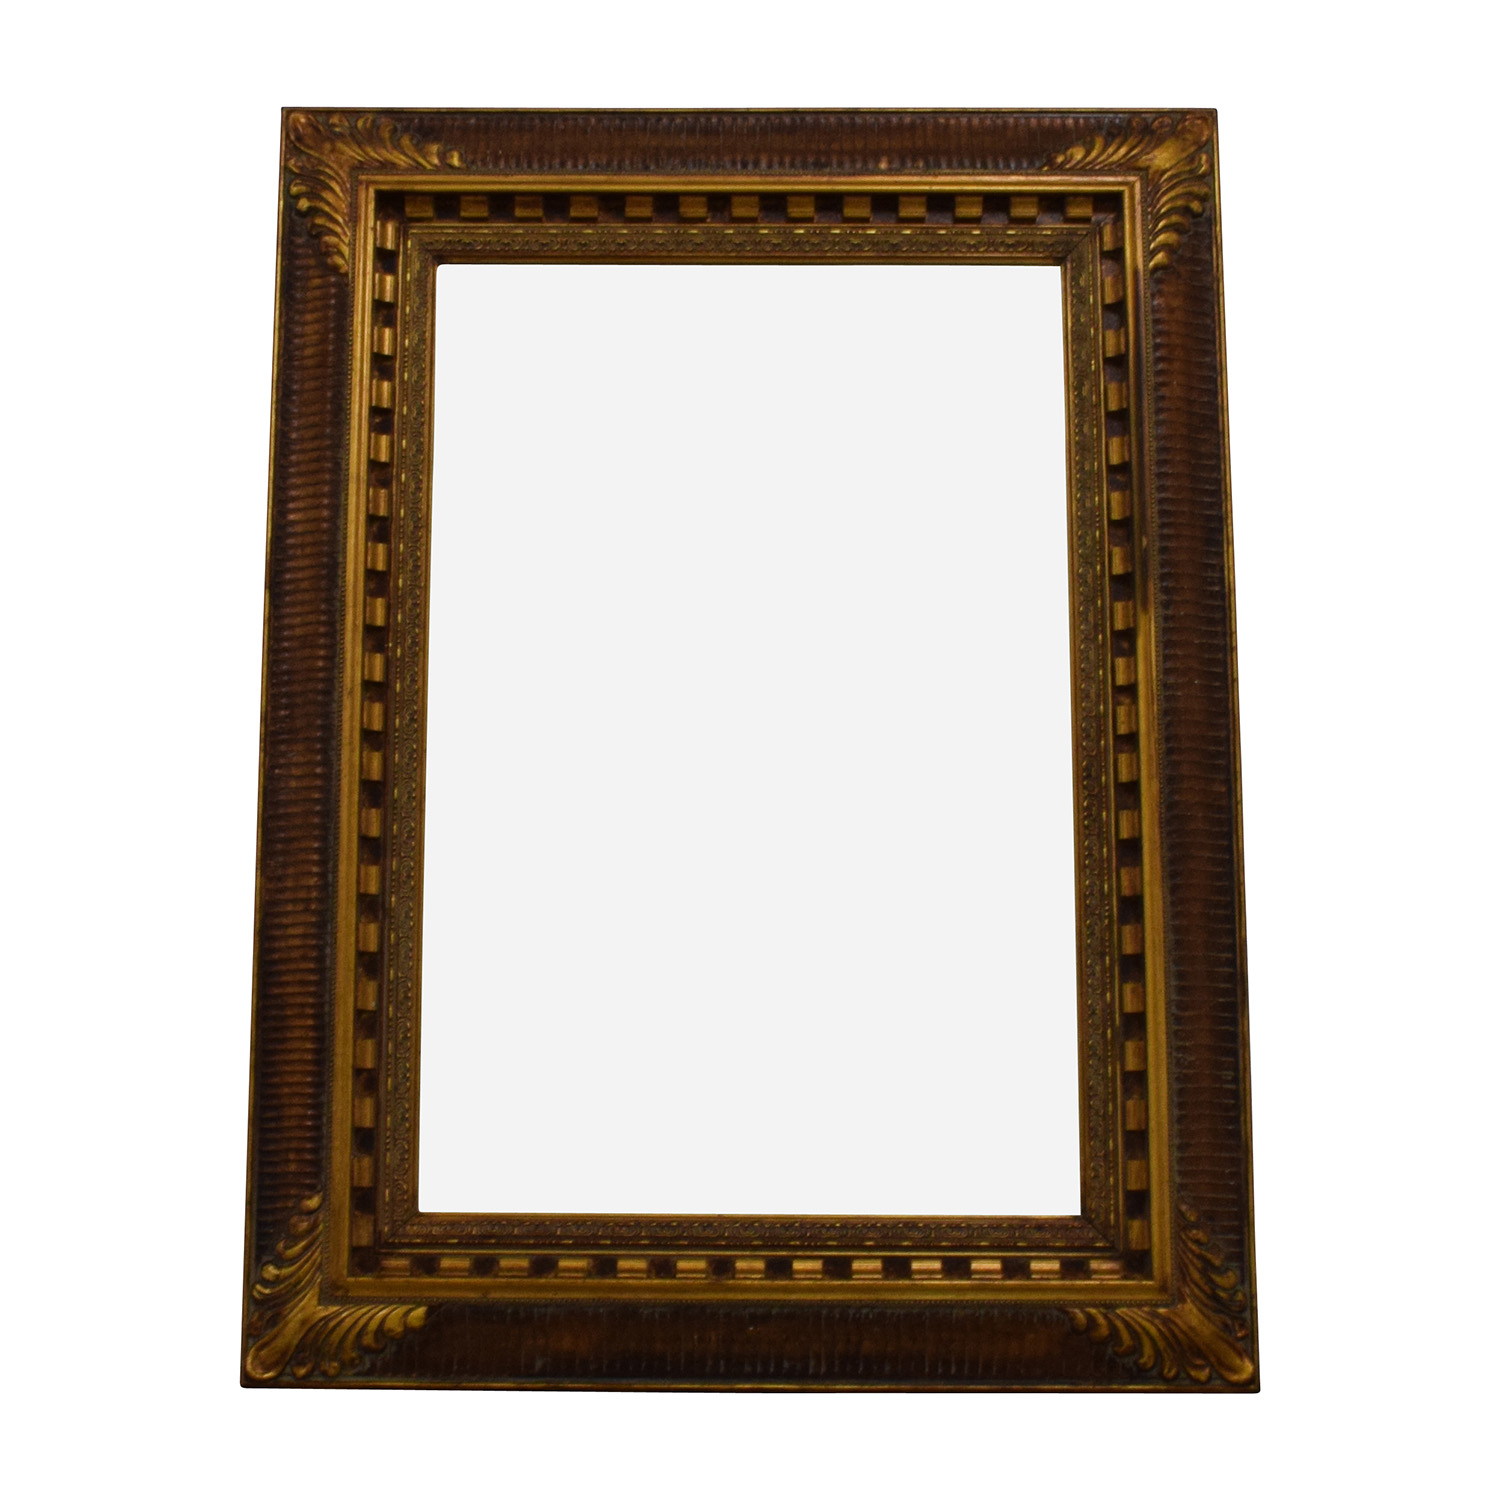 Antique Gold Framed Mirror coupon